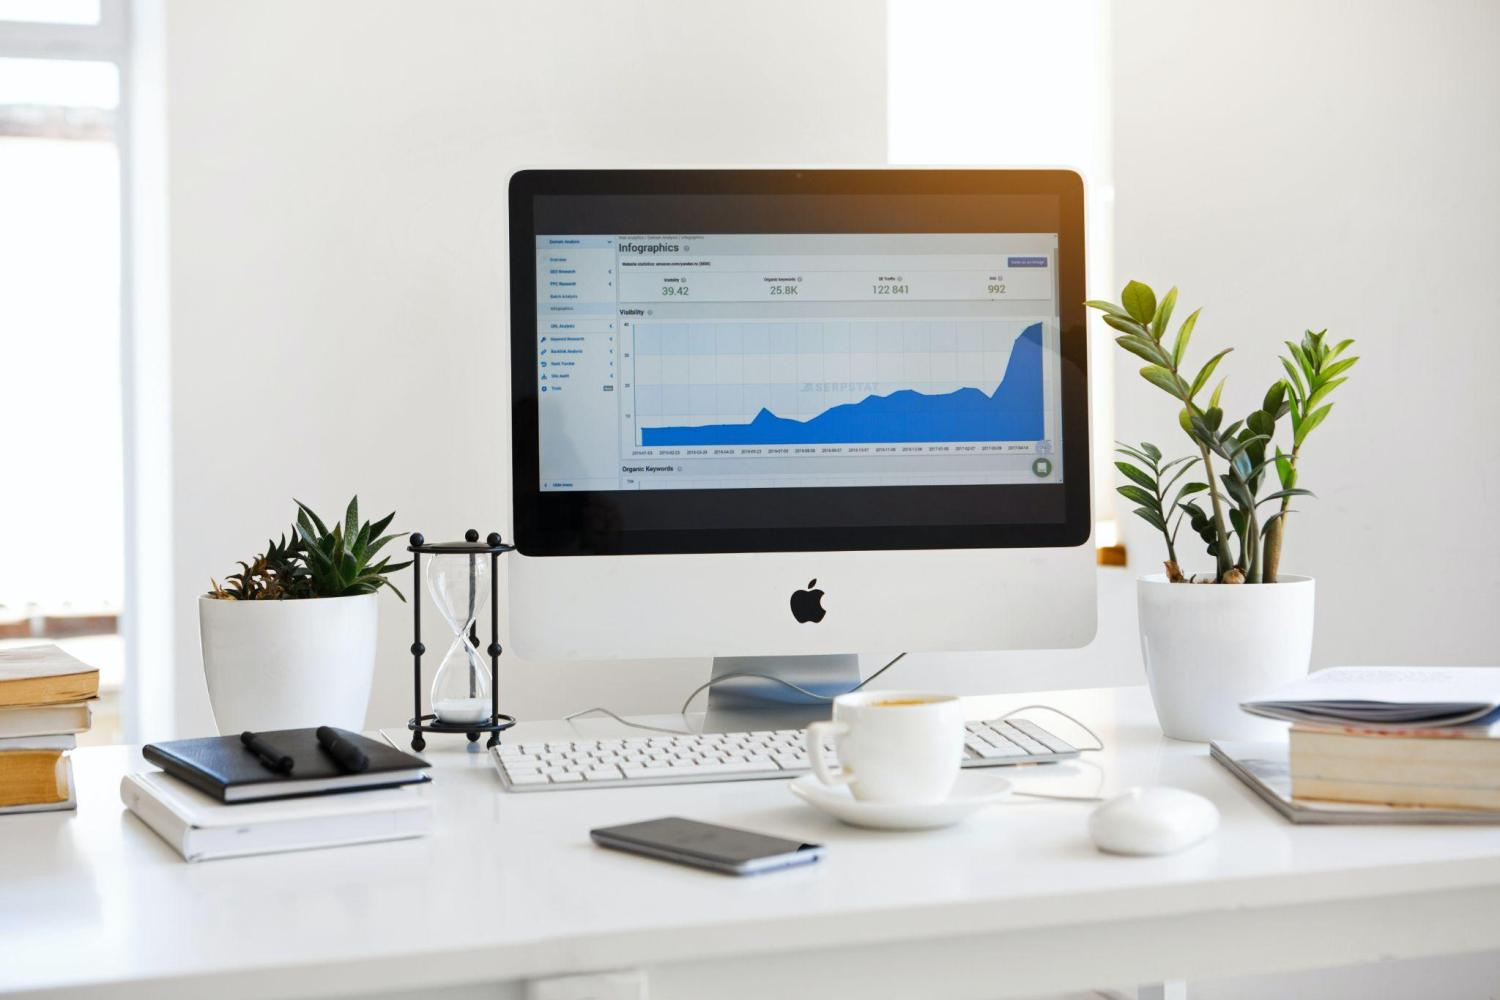 StrategyDriven Online Marketing and Website Development Article, 5 Effective Ways to Maximize Your Digital Marketing ROI